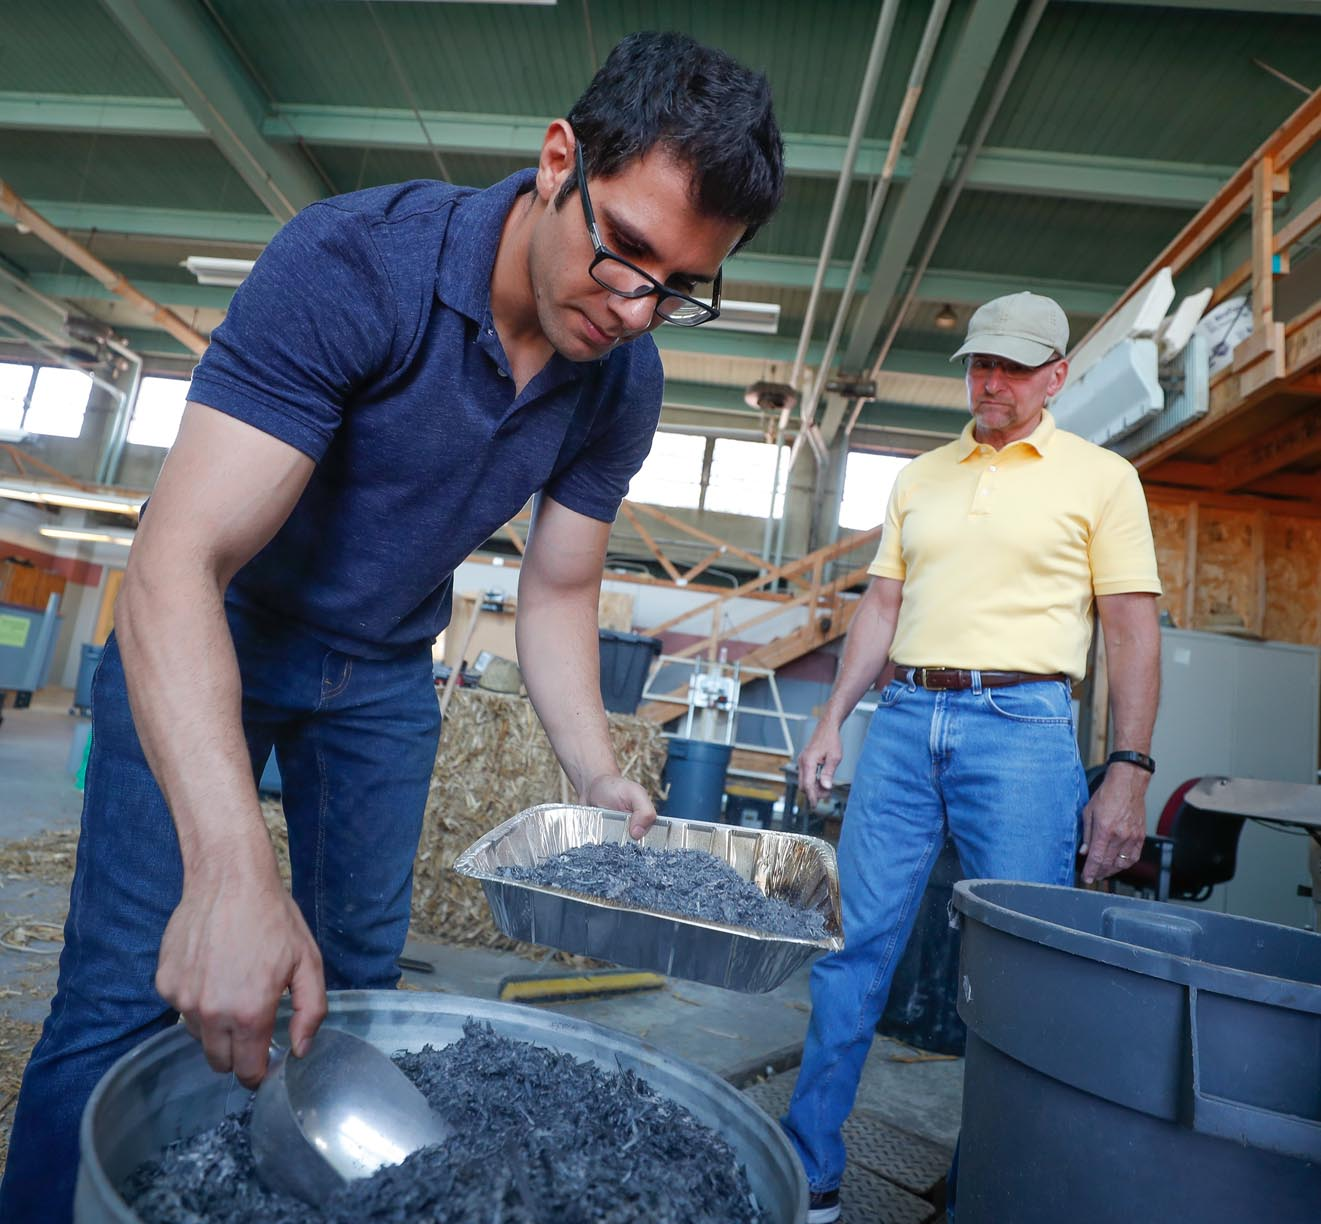 UNK researchers Mahmoud Shakouri, left, and Jim Vaux, both assistant professors of construction management, work on a project that will determine whether corn stover ash can be mixed with cement to improve concrete's durability. (Photo by Corbey R. Dorsey, UNK Communications)